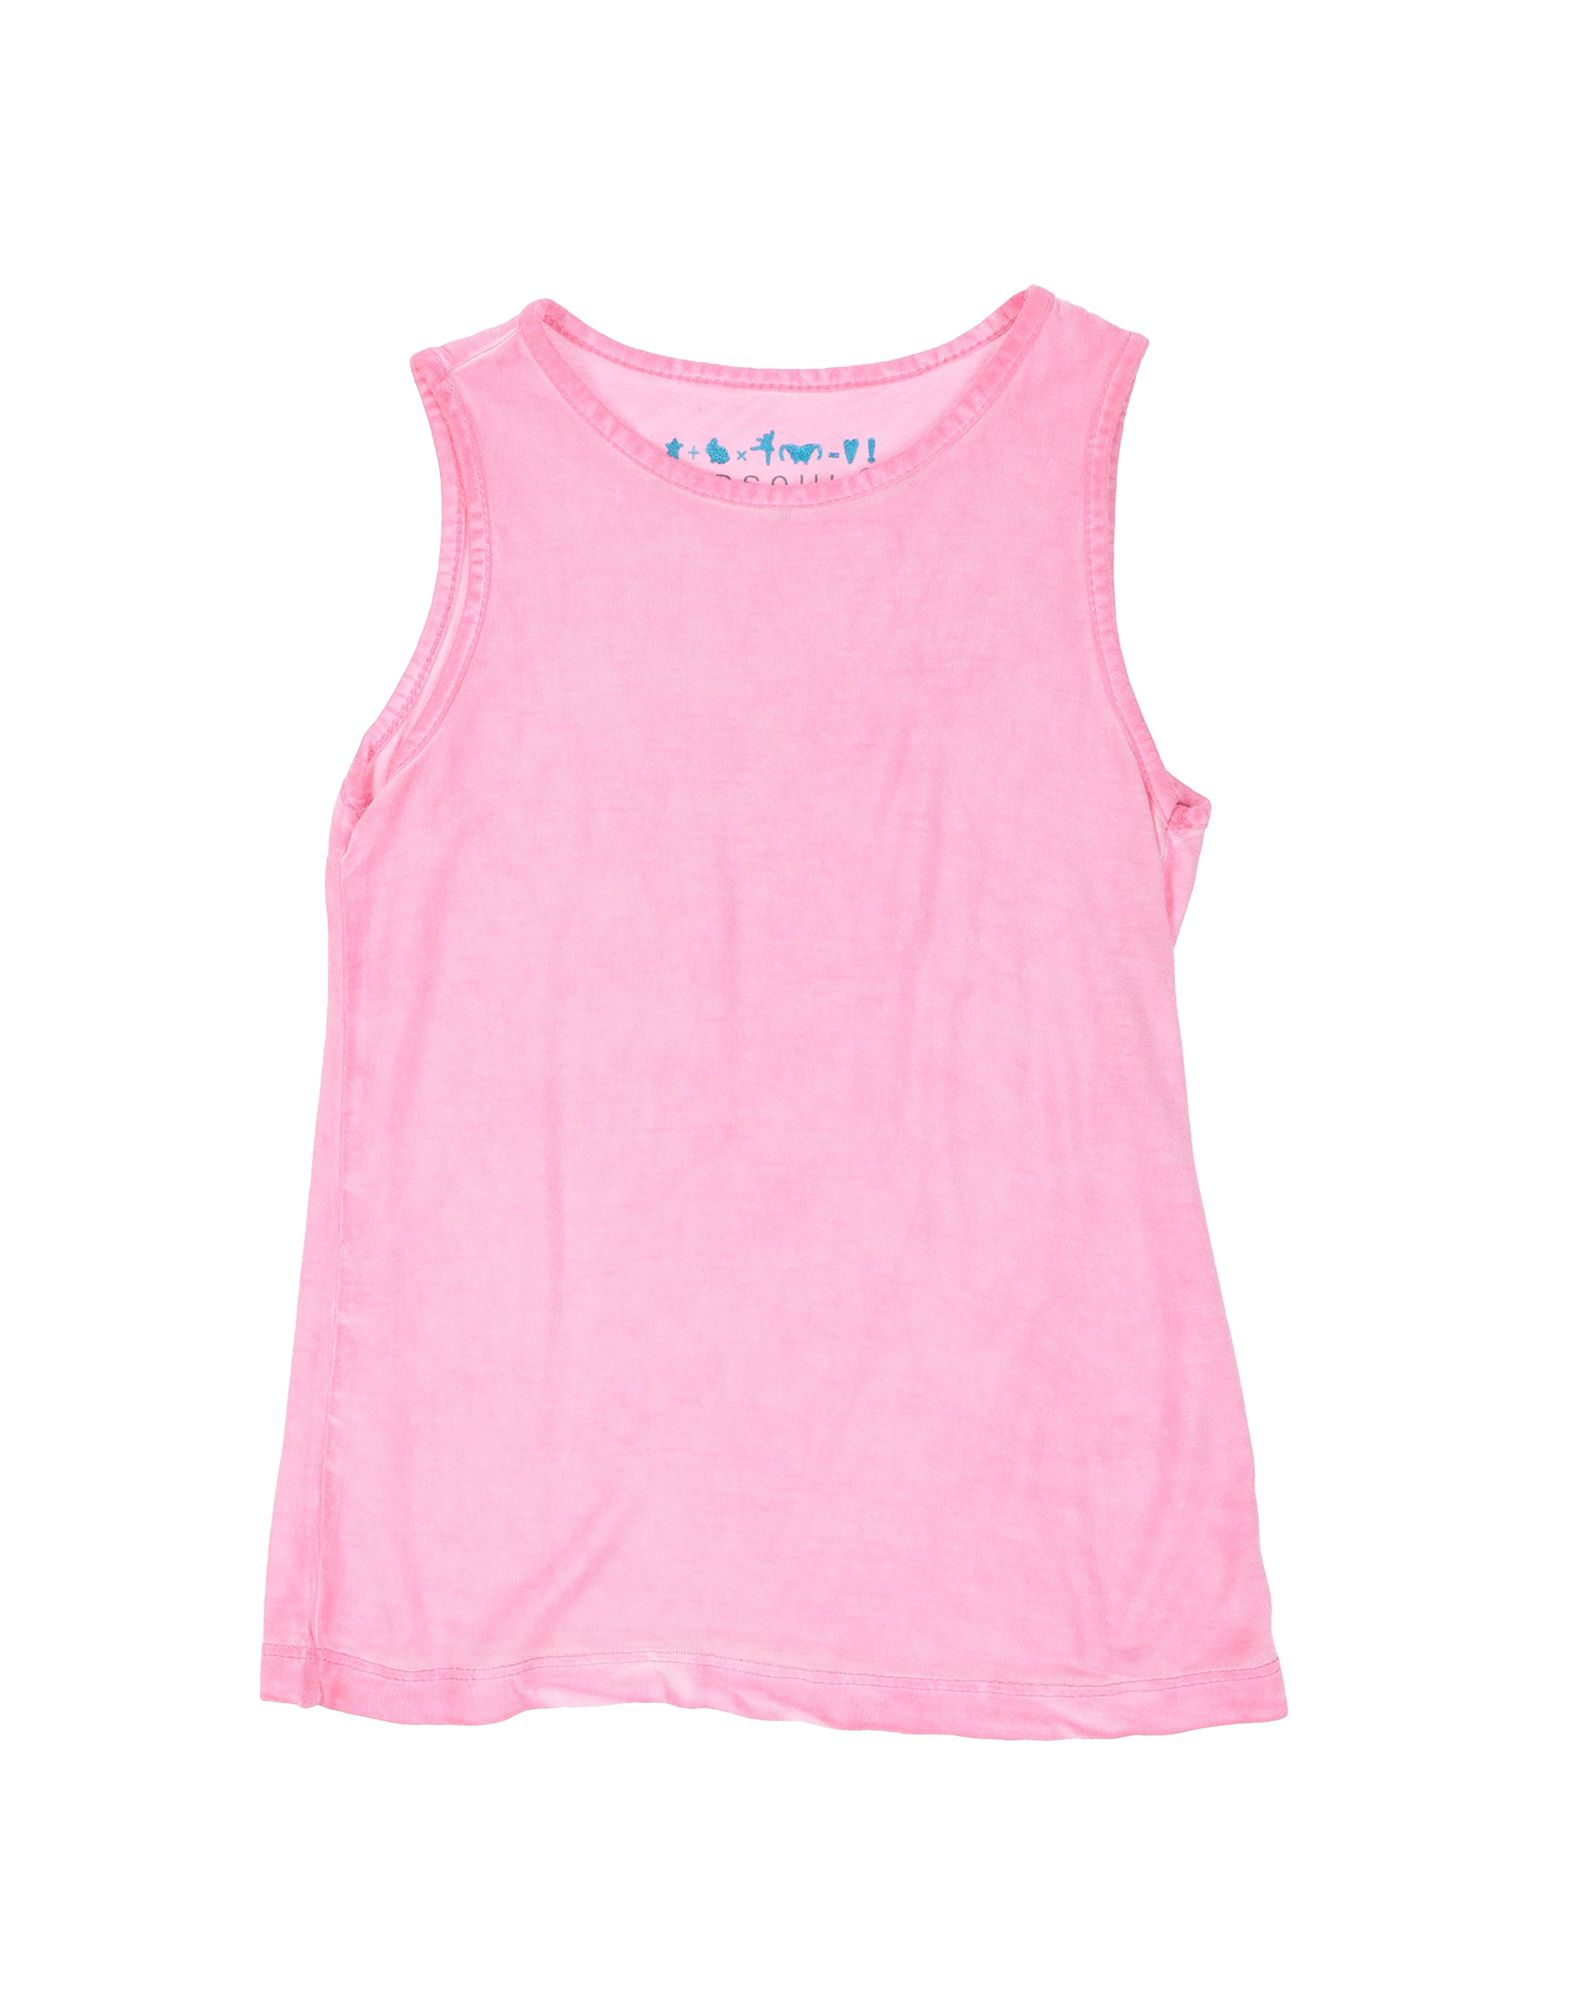 Red Soul Kids' T-shirts In Pink